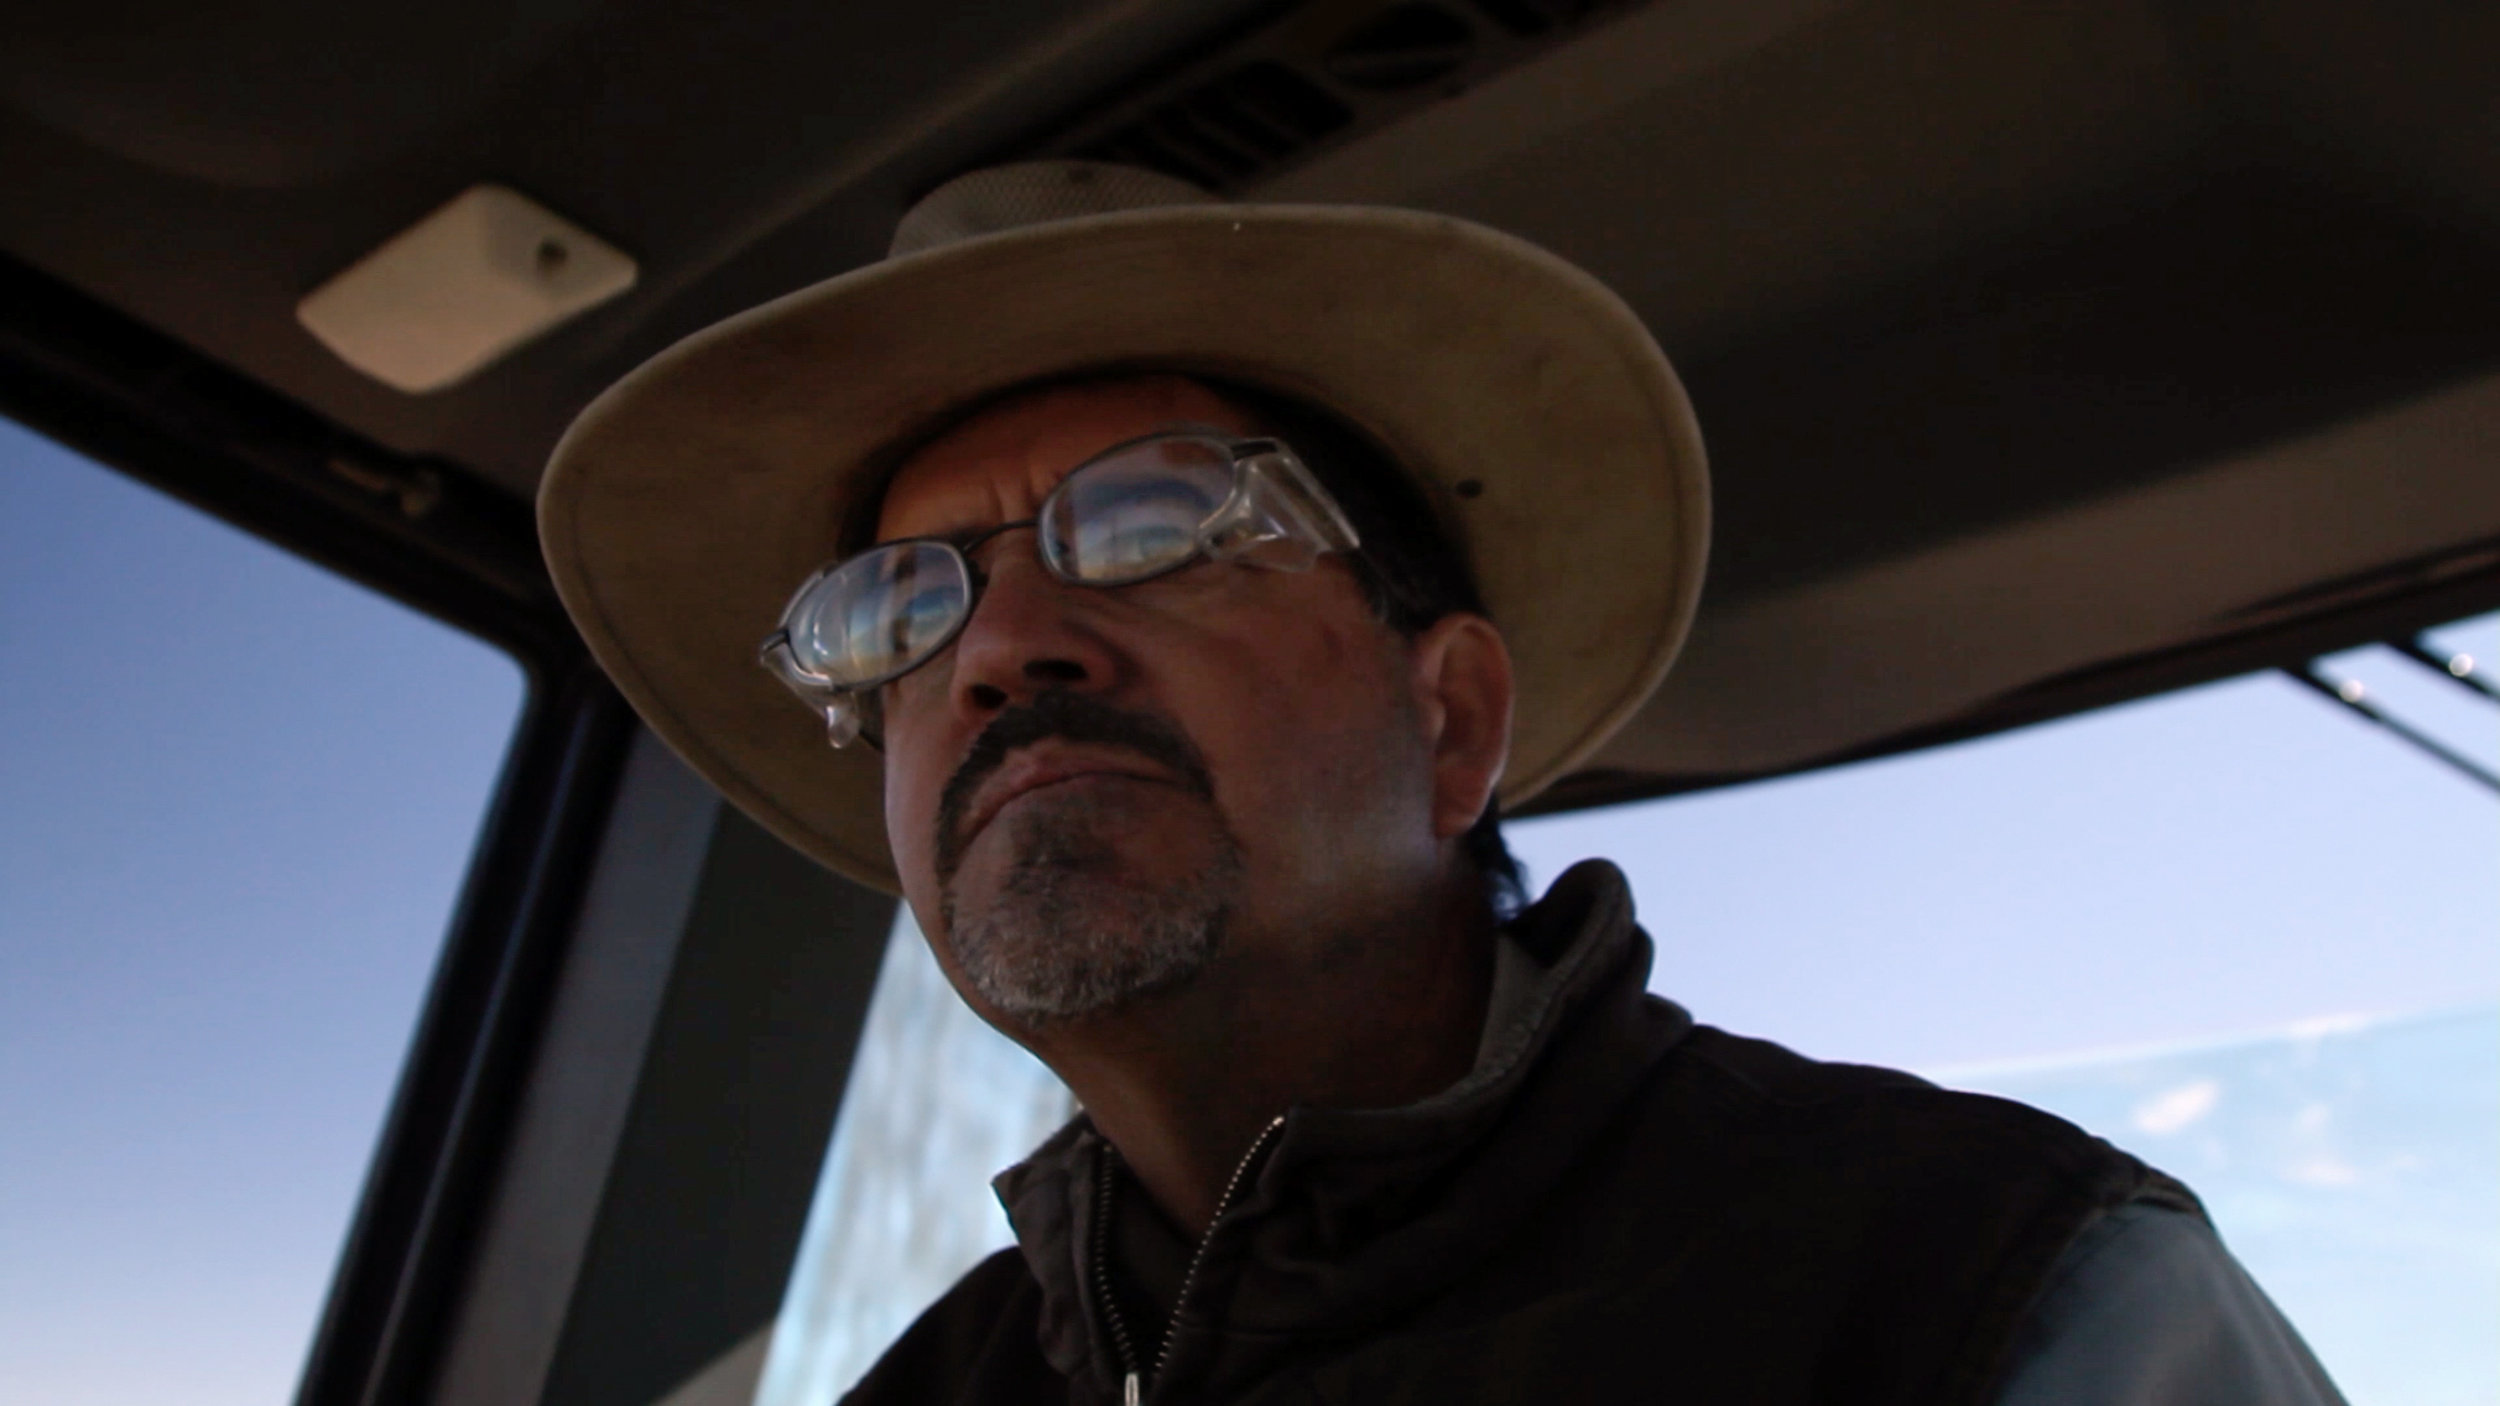 CARLOS  comes from dirt people: farmers, ranchers, and road-builders. A consummate independent-thinker and doer, he's been fighting to get Pajarito on the first responders' map for years.